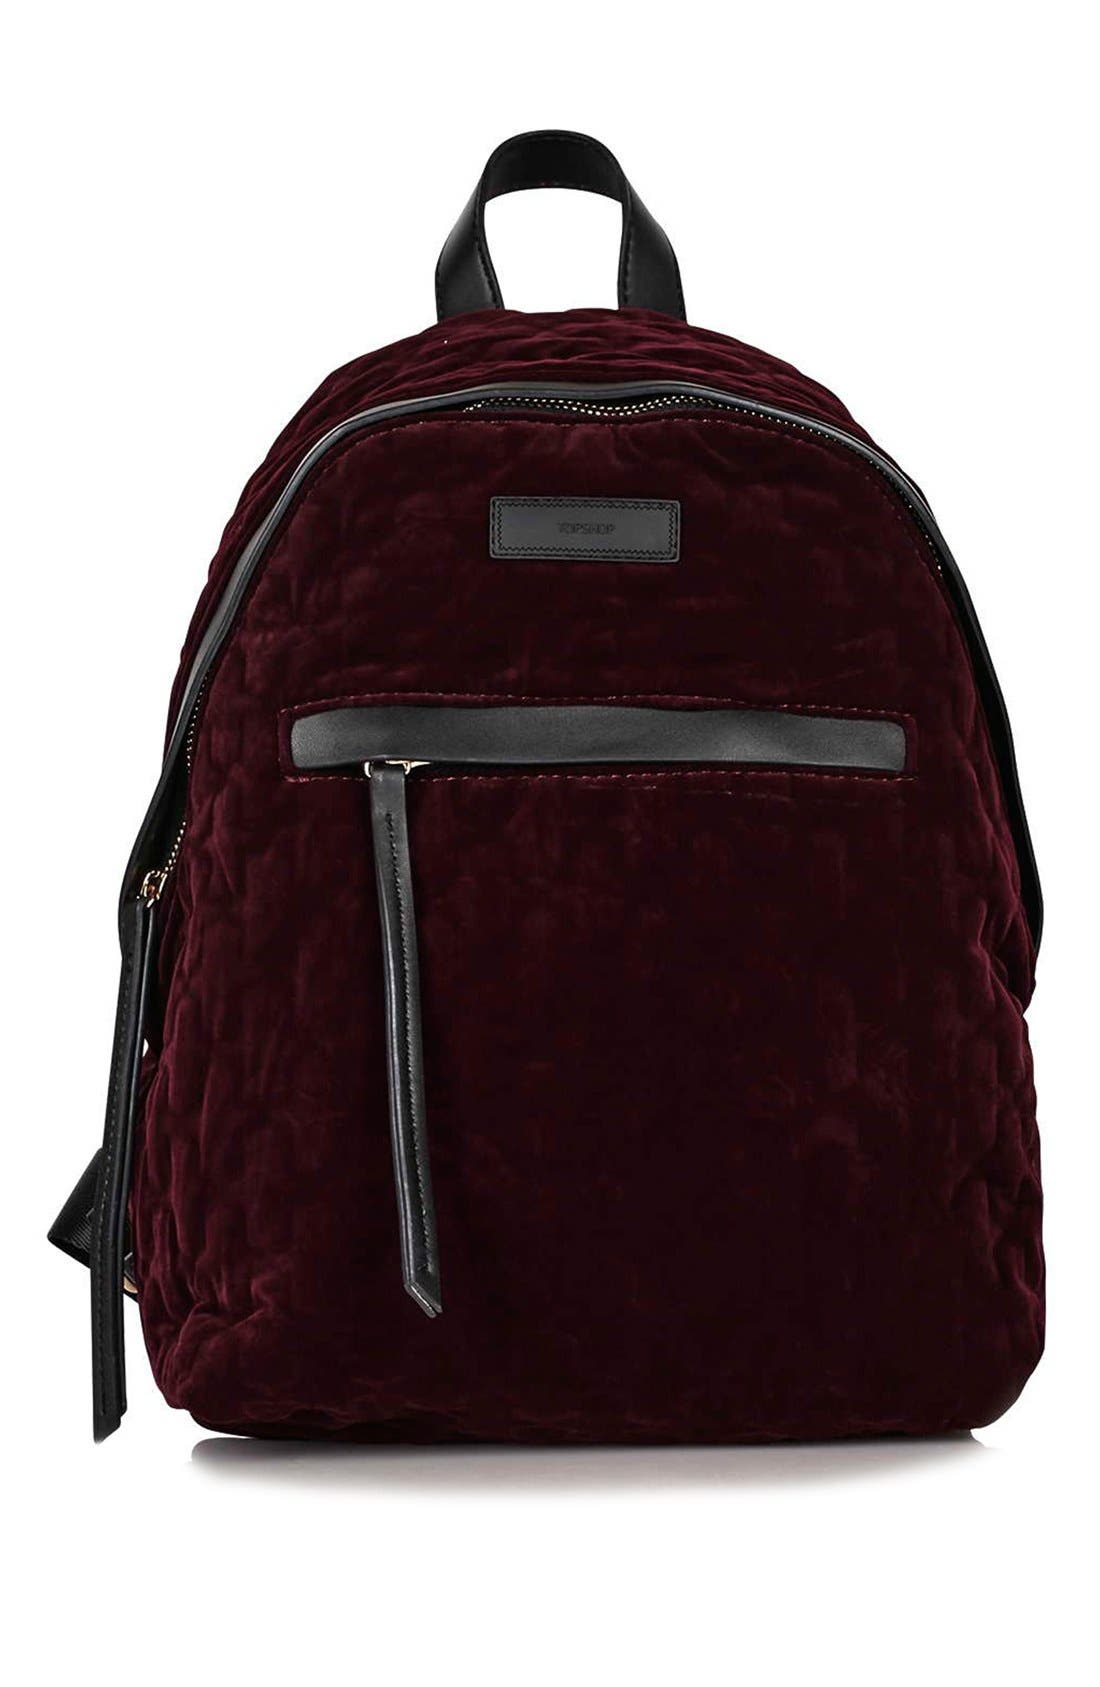 Alternate Image 1 Selected - Topshop 'Bristol' Velvet Backpack